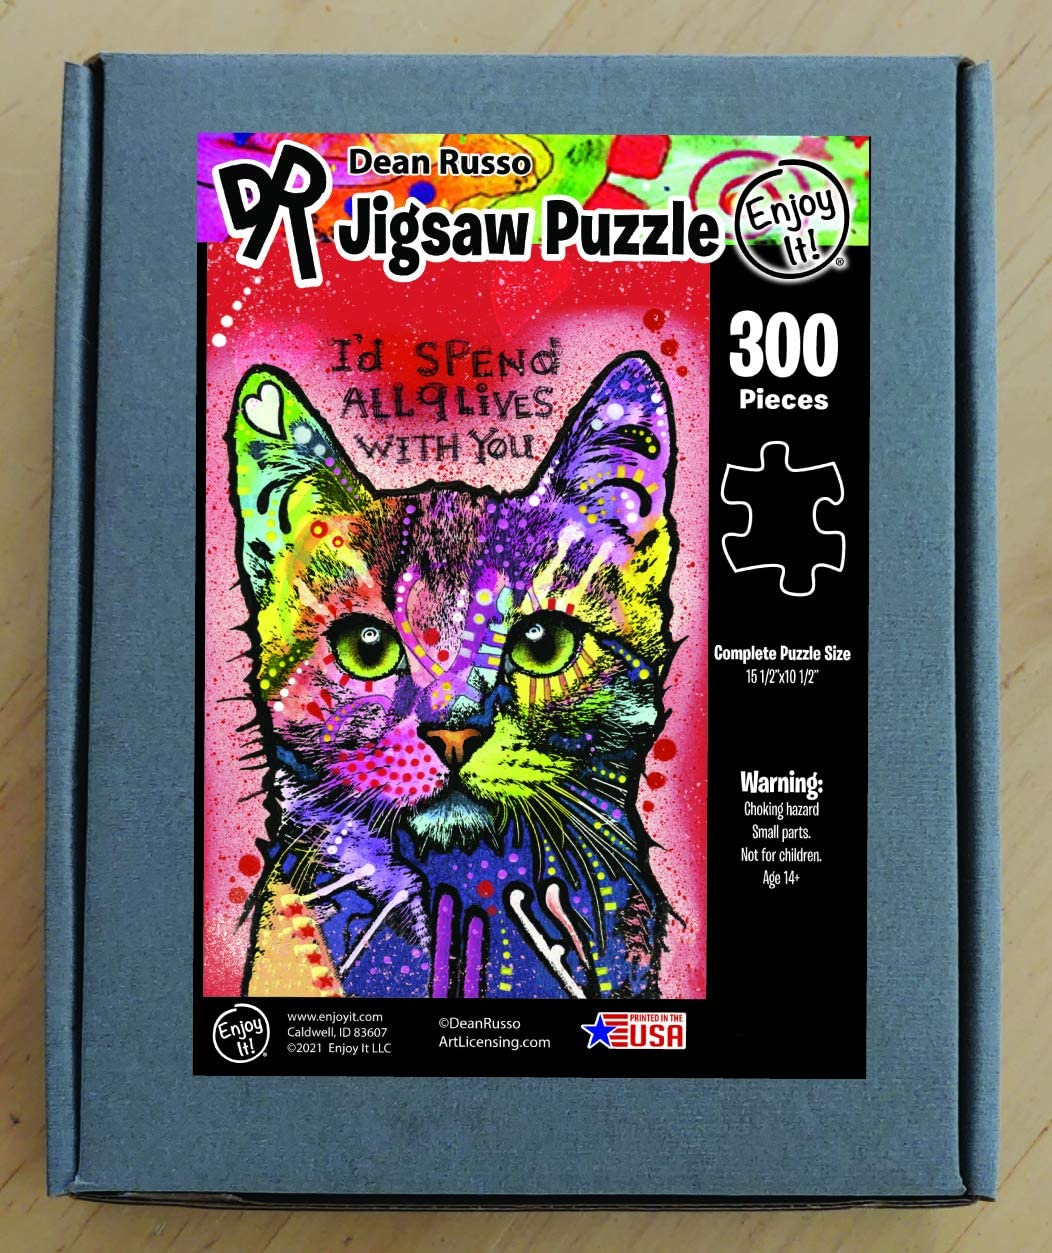 300 Piece Jigsaw Puzzle for Kids /& Adults Enjoy it Cat Puzzle Featuring Pop Art of Dean Russo